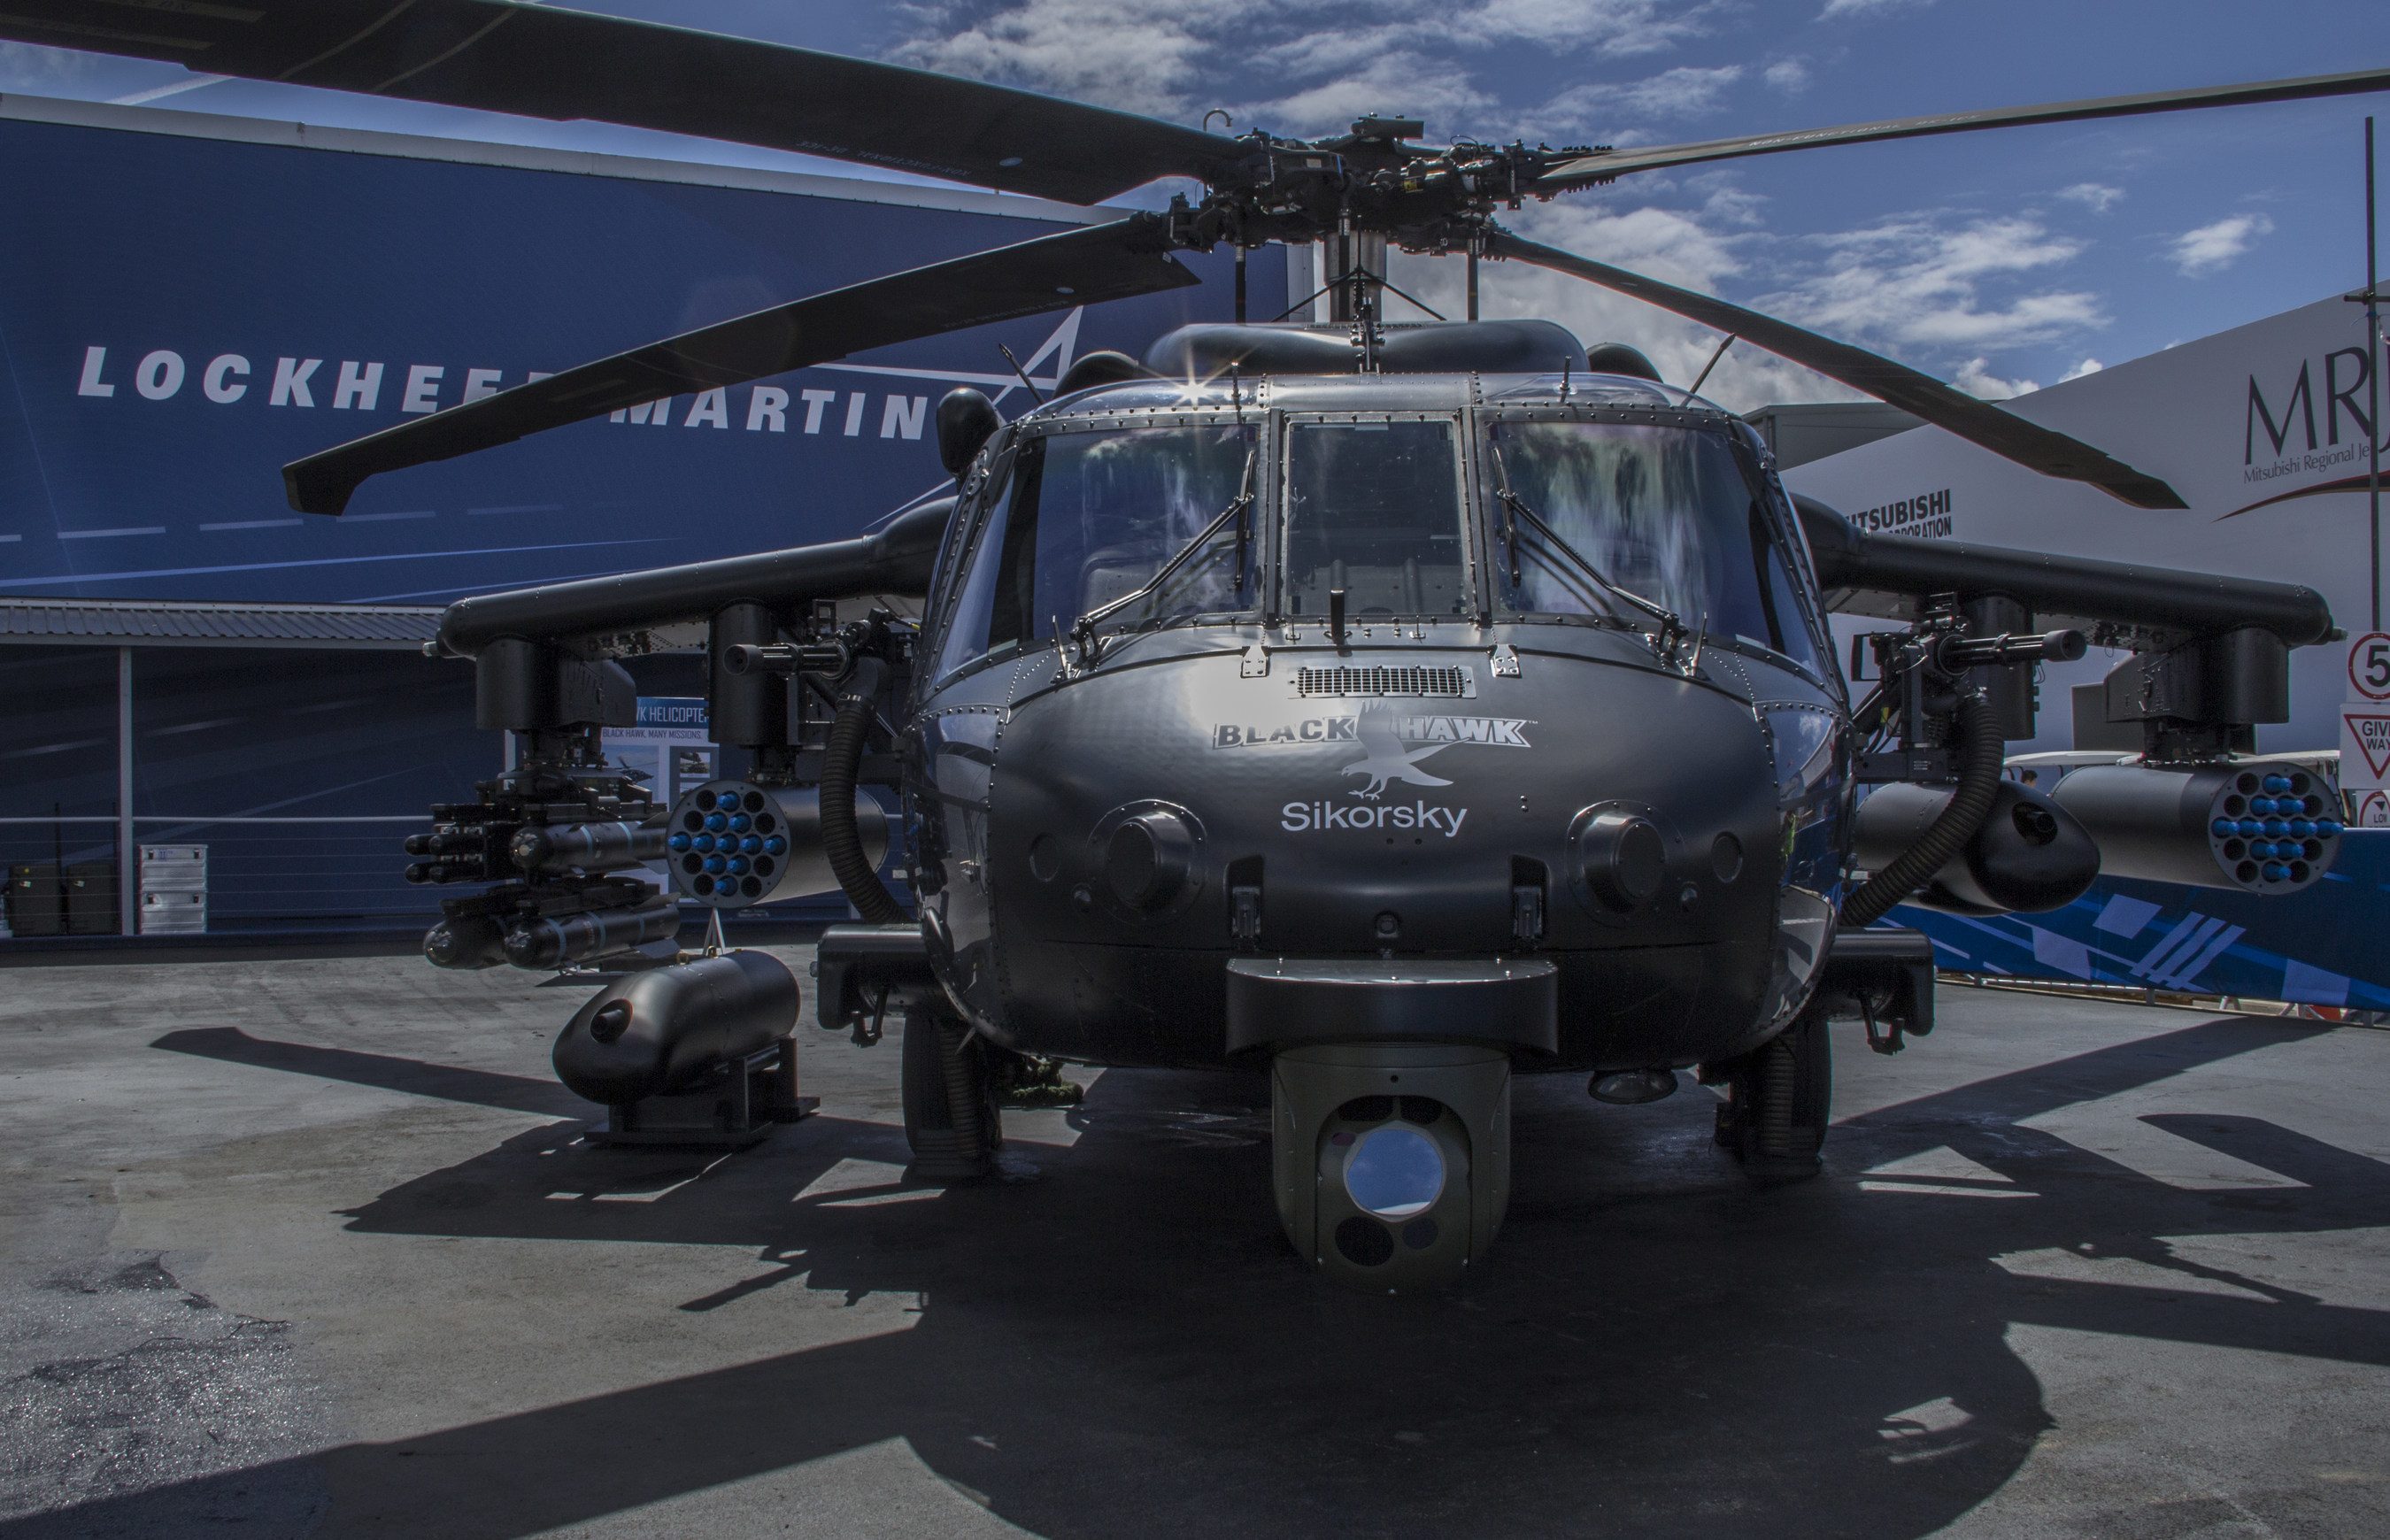 A European-built BLACK HAWK helicopter on display at the Farnborough International Airshow showcases weapons that can be integrated onto the multirole aircraft. Now we can configure an armed helicopter to the specific preferences of current and future customers.